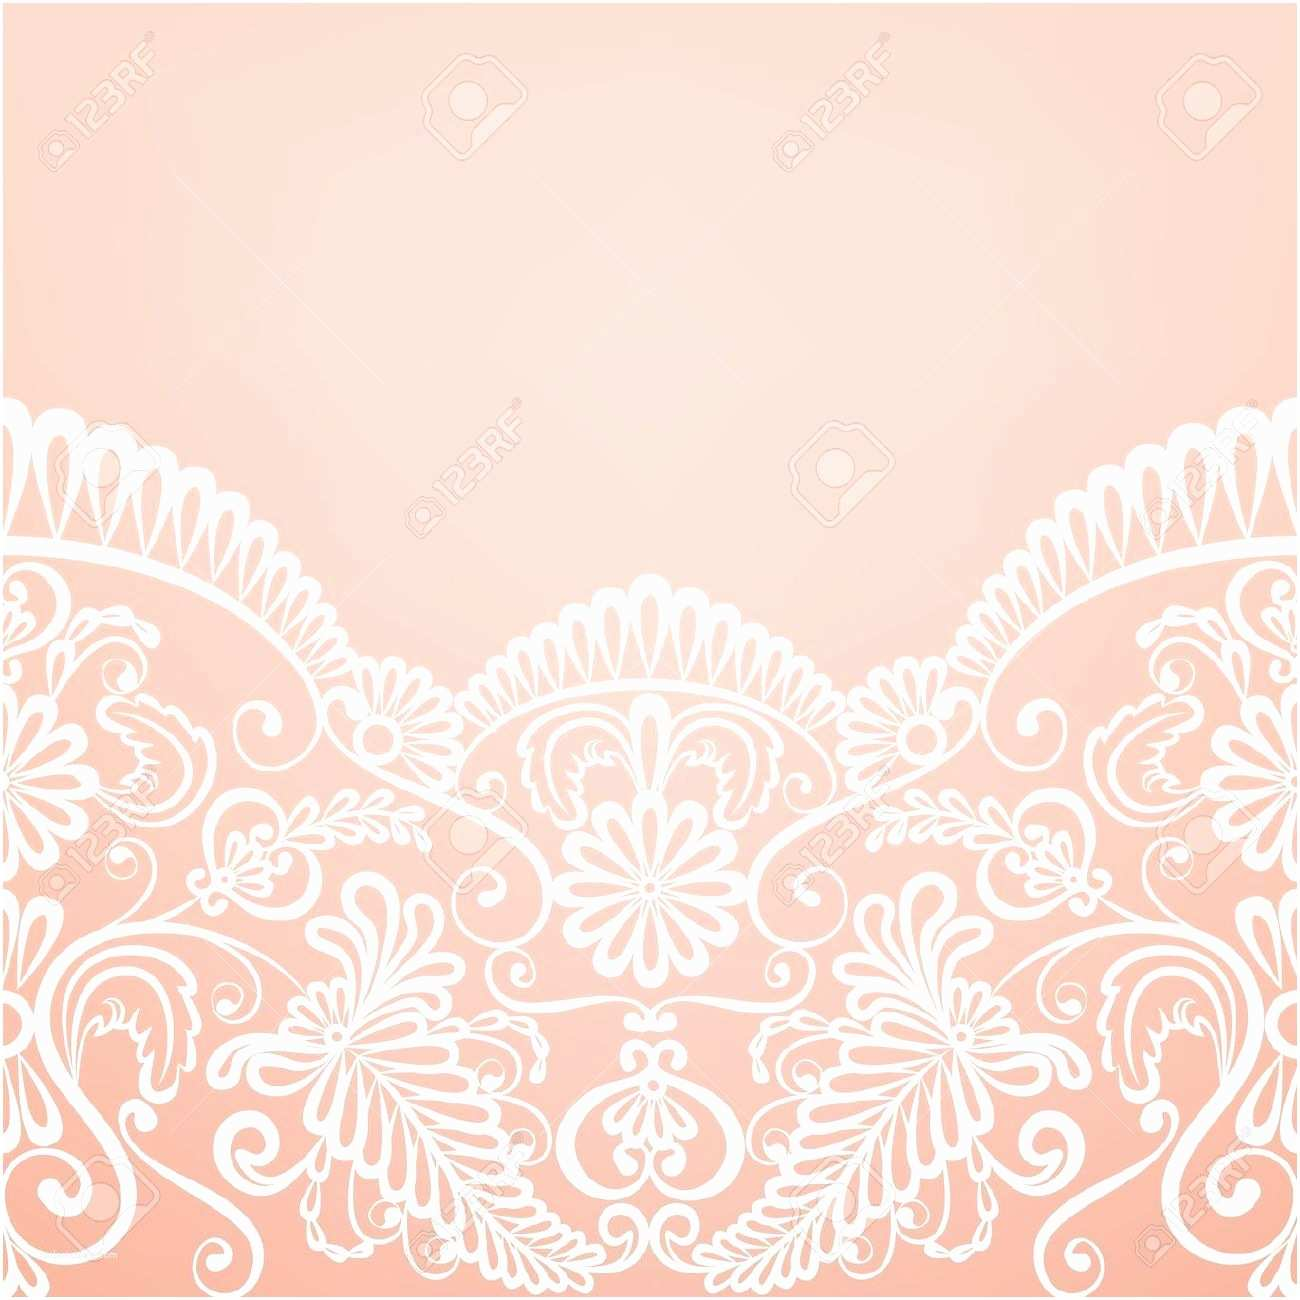 Lace Pattern Wedding Invitations Template for Wedding Invitation Greeting Card with